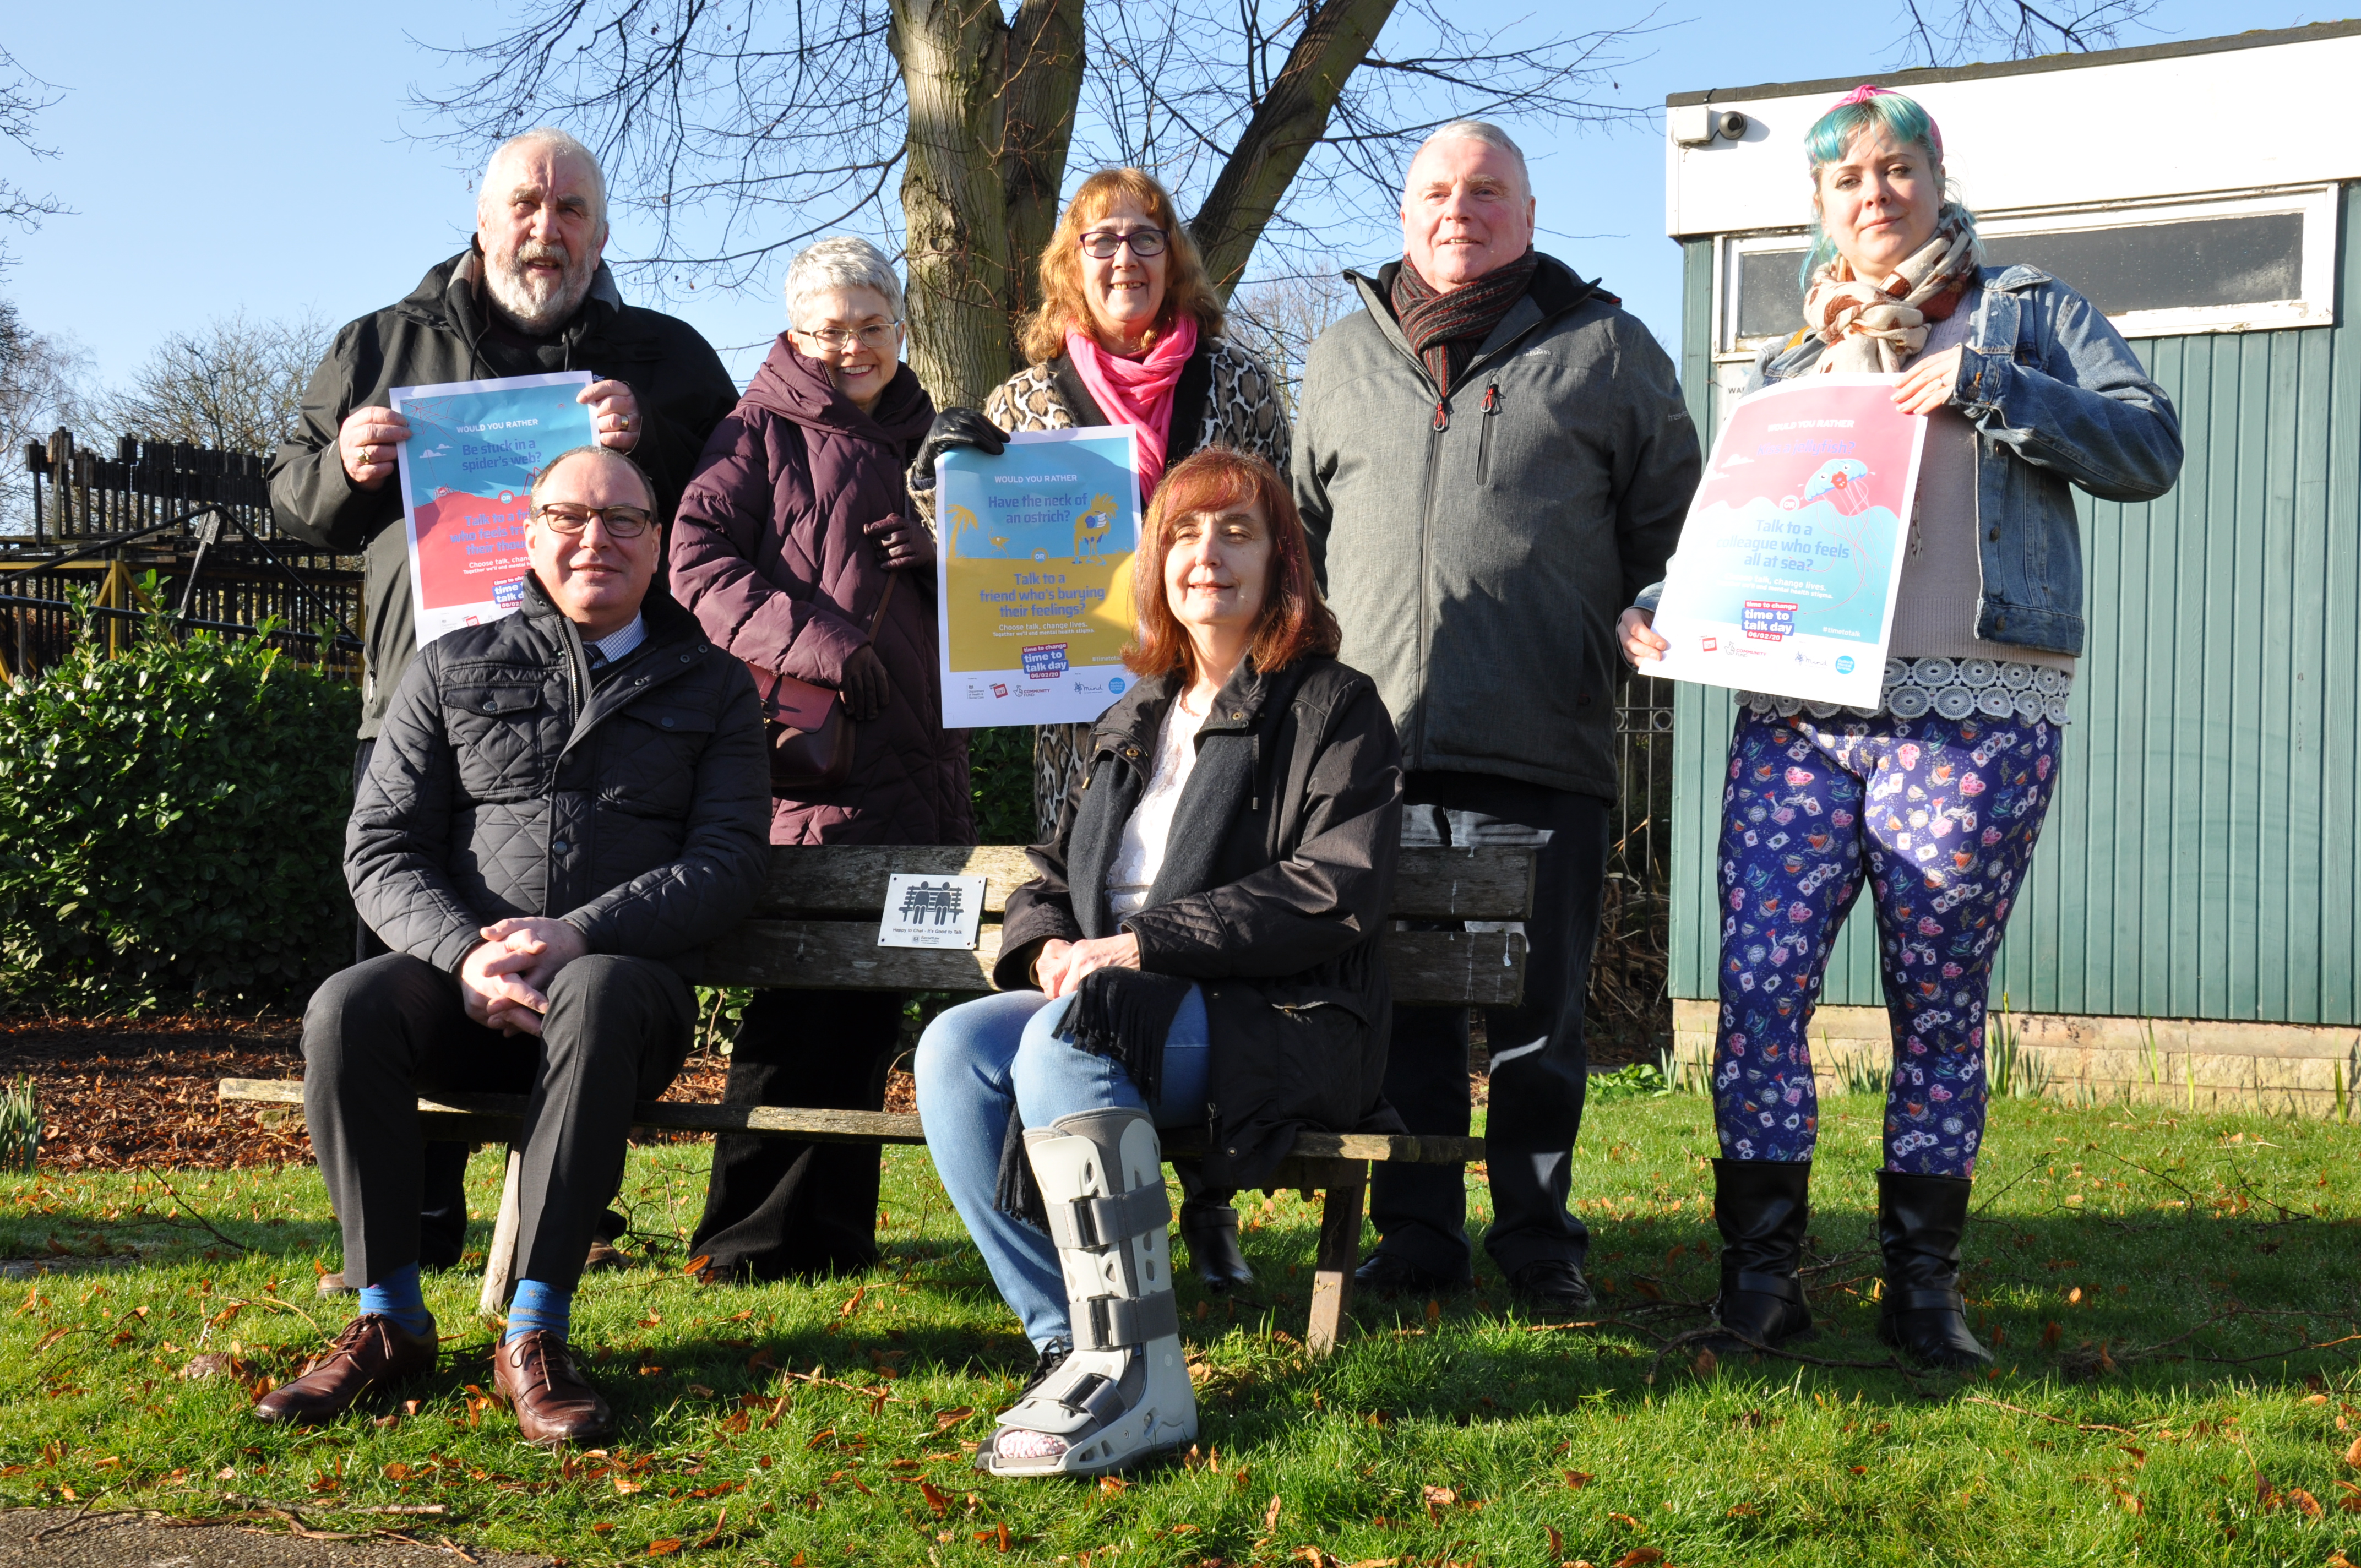 Bassetlaw 'Happy to Chat' Benches Encourage Conversation